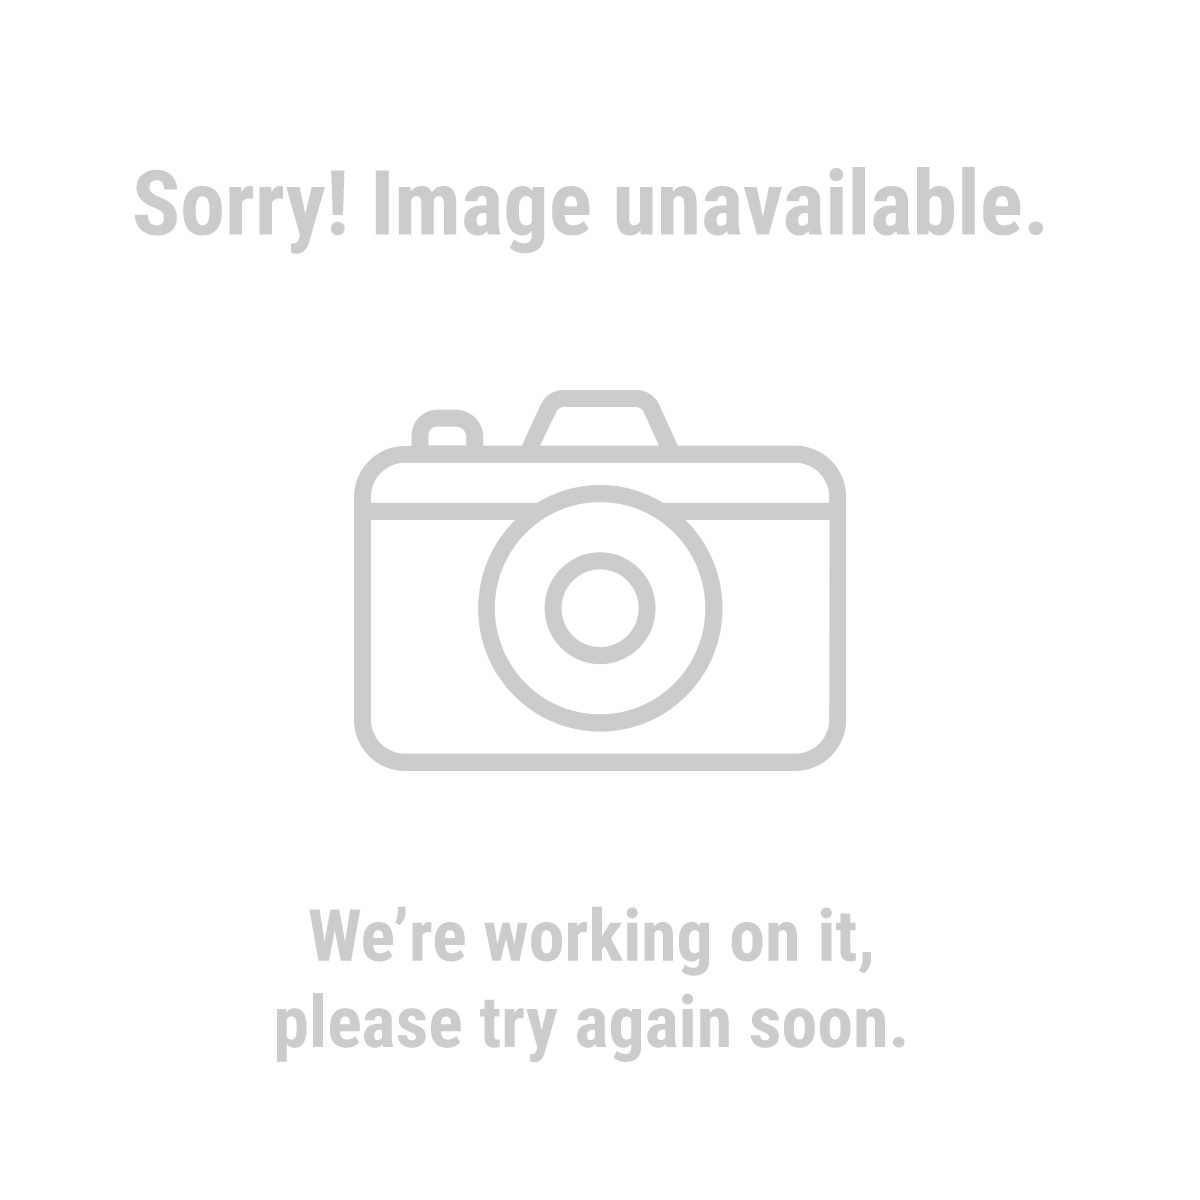 Bunker Hill Security 94985 0.19 Cubic Ft. Electronic Digital Safe